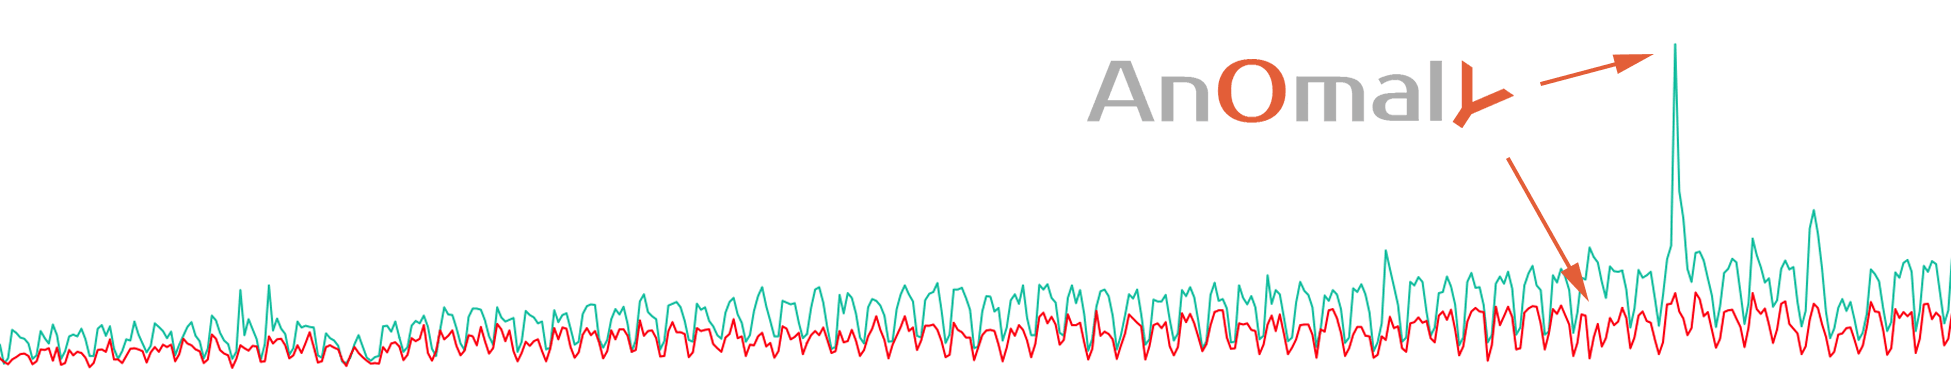 anomaly in time series correlation